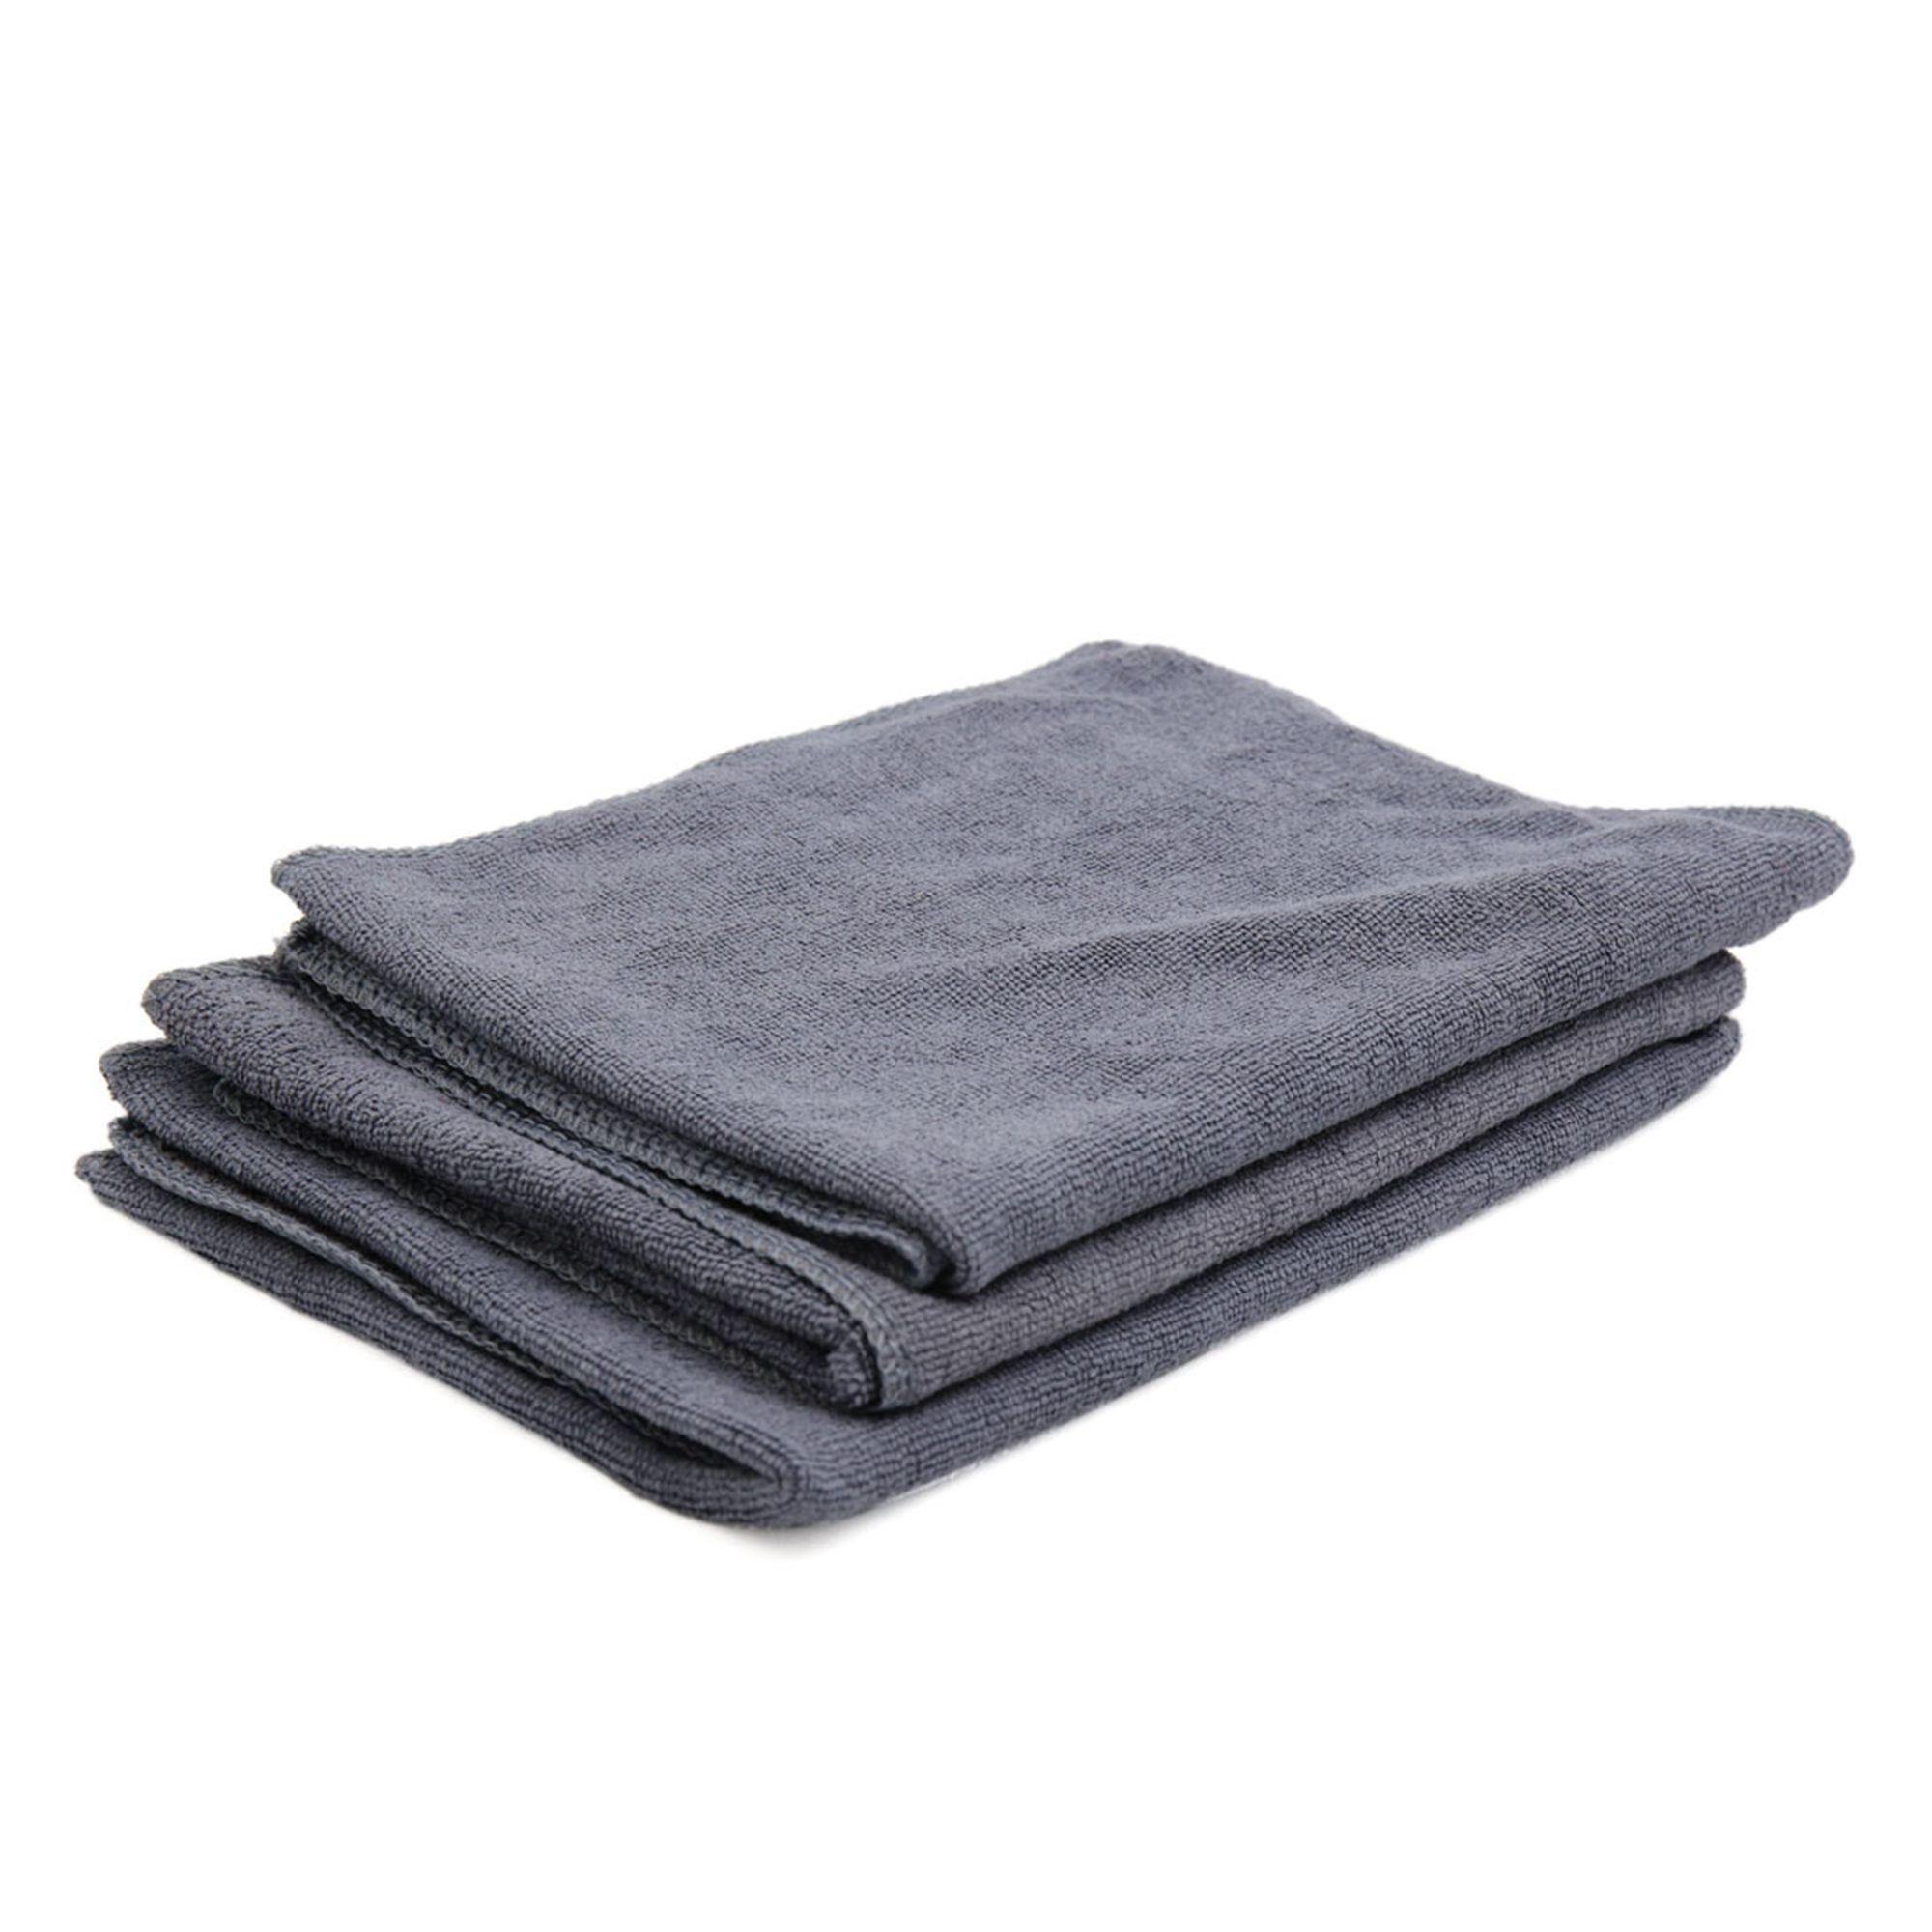 3pcs 65 x 33cm 250GSM Microfiber Towel Cleaning Cloths for Car Washing Gray